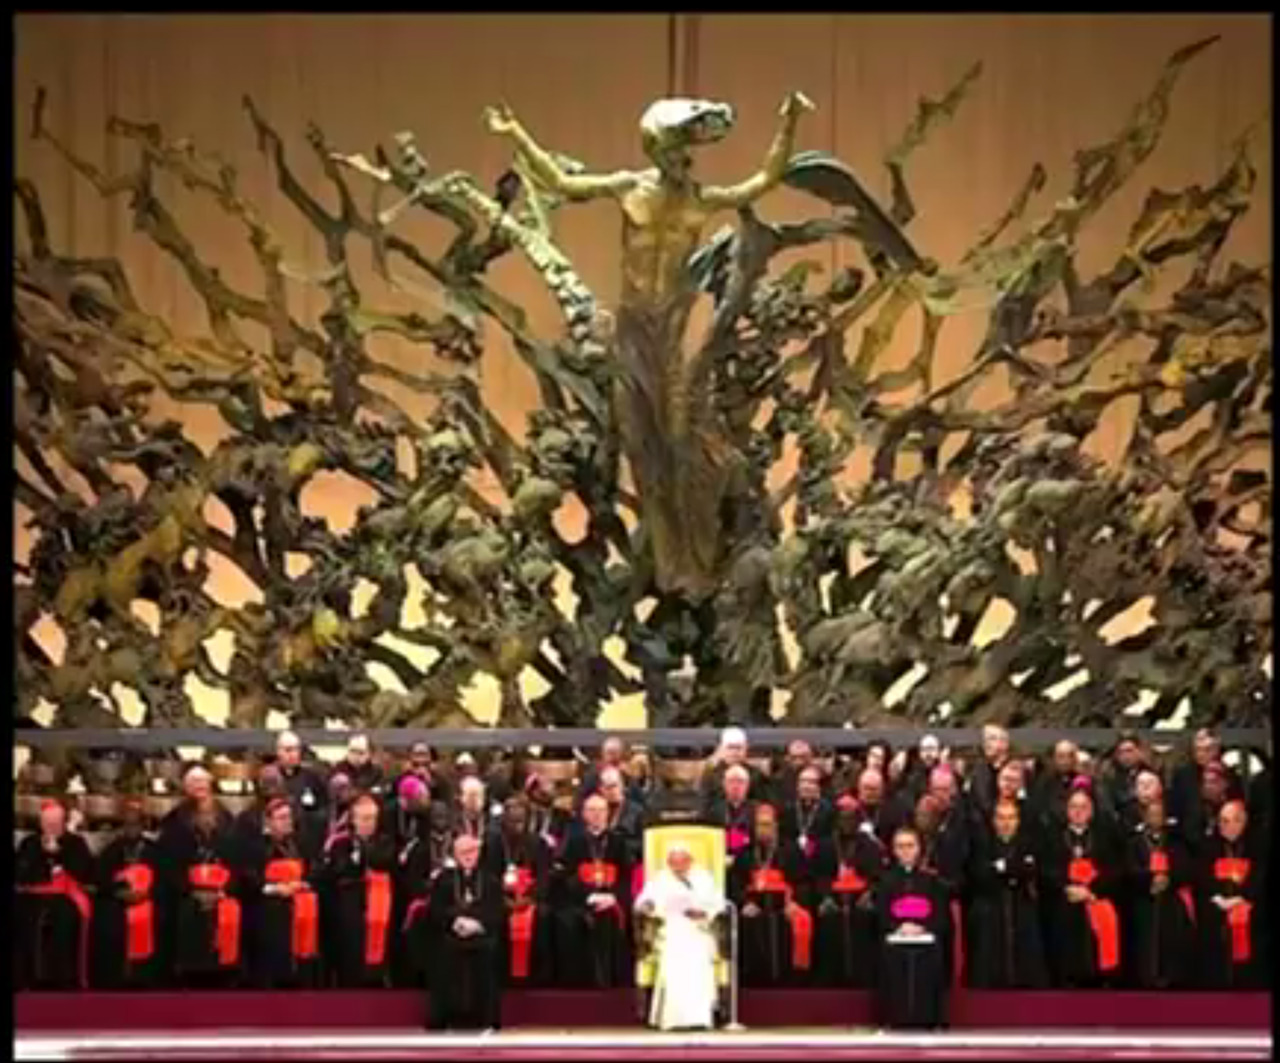 40bc17acdbf3 THE PAUL VI AUDIENCE HALL AT THE VATICAN. THE NAME OF THIS… – Conspiracy  Theories